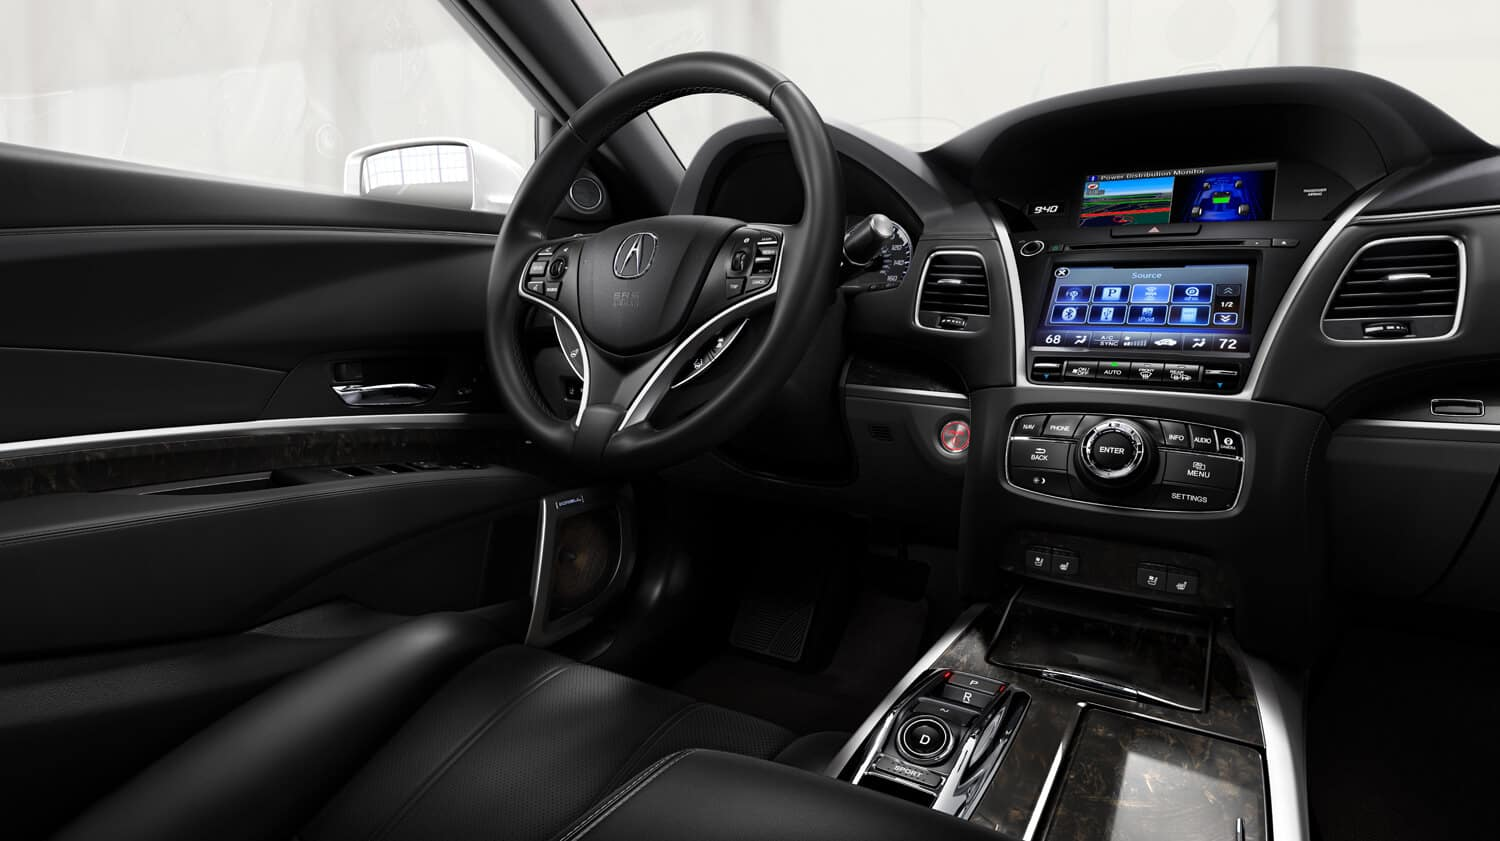 2020 Acura RLX Interior Cockpit Passenger Side